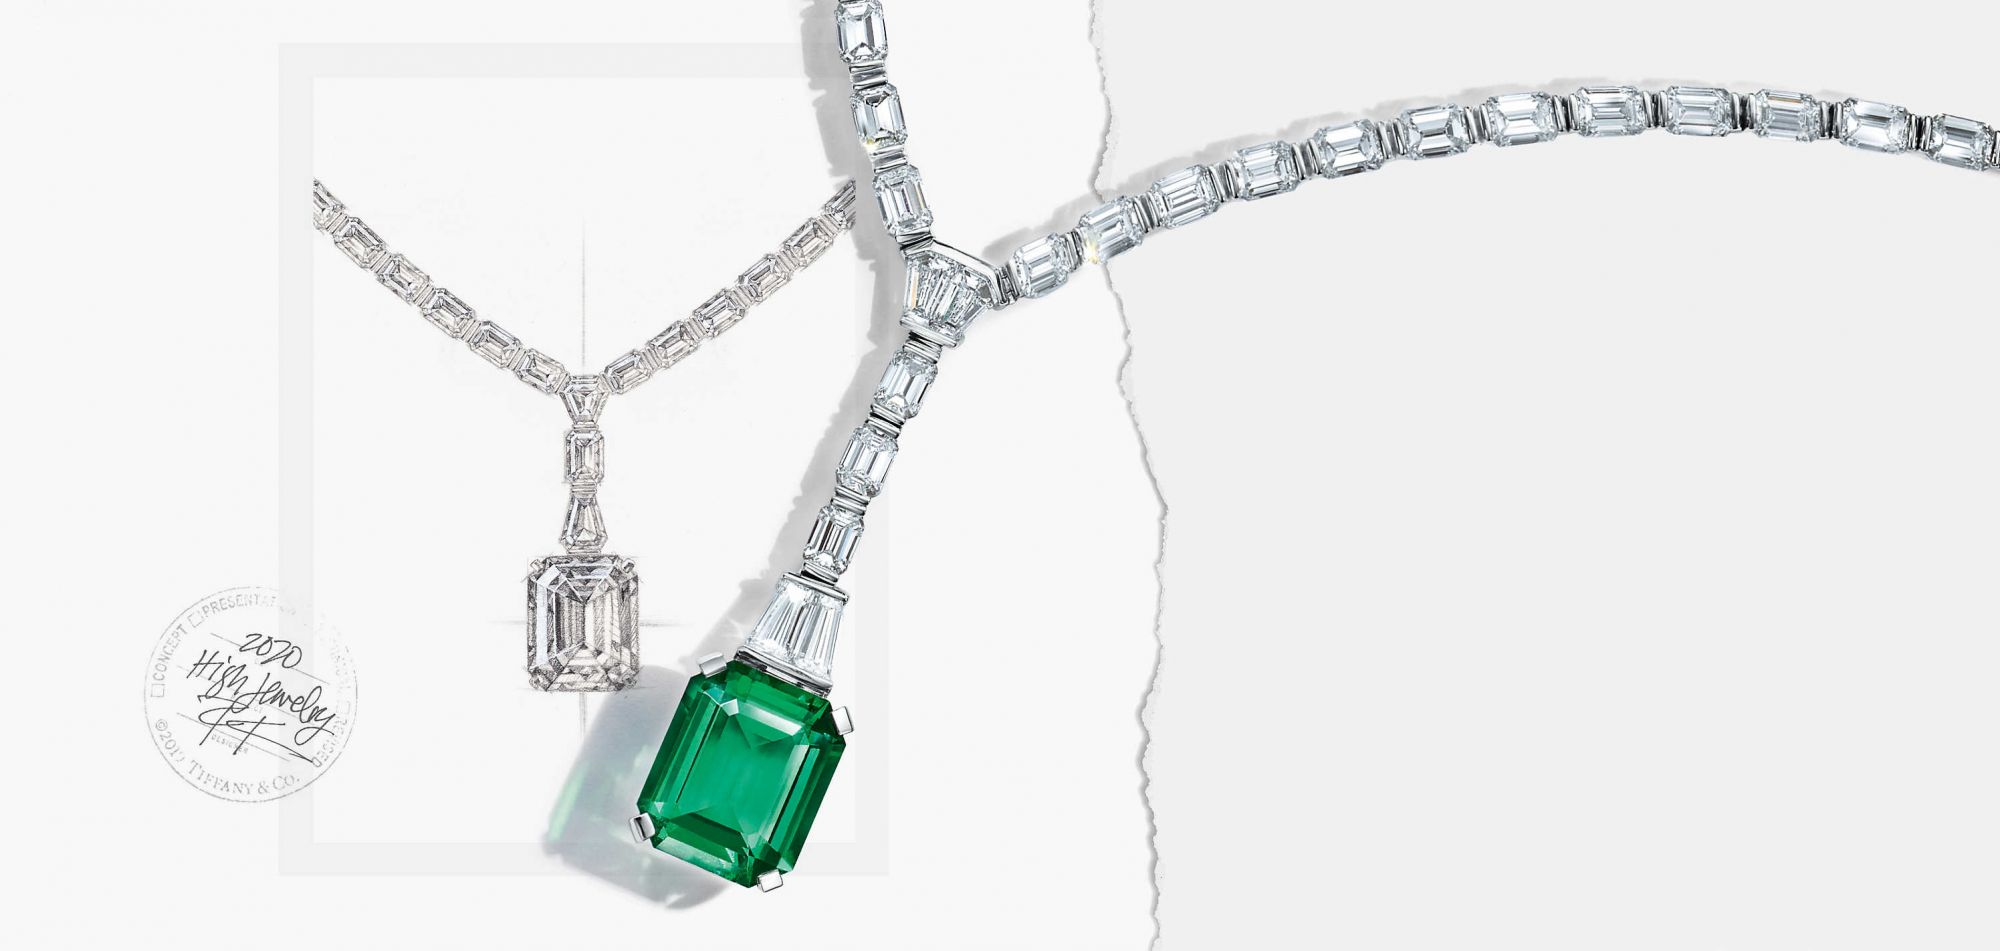 Jewels & Time 2020: Tiffany & Co Shows its Design Prowess With its Extraordinary Tiffany High Jewellery Collection